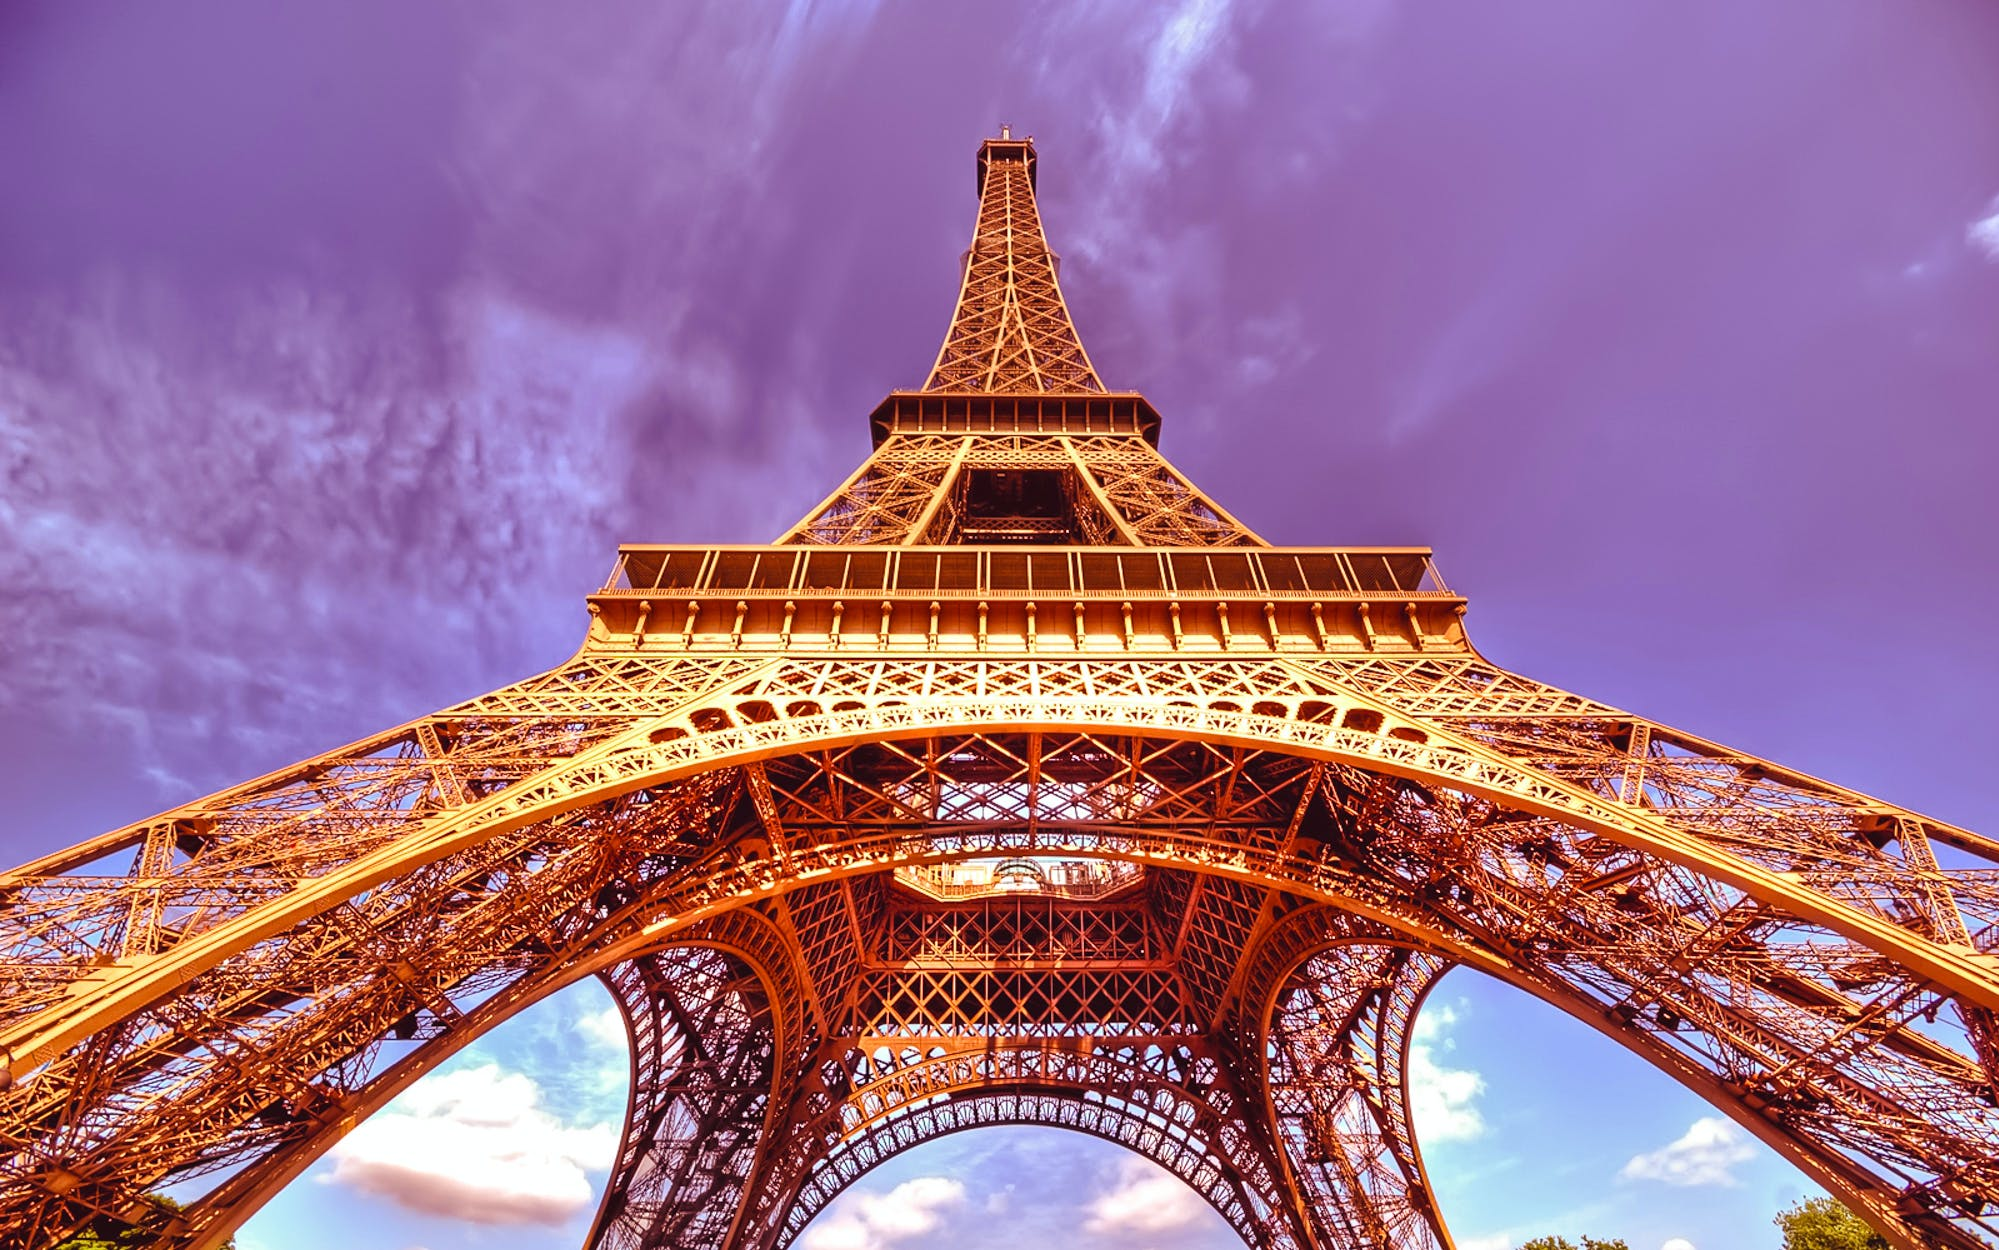 Skip the Line: Eiffel Tower + Moulin Rouge with Champagne